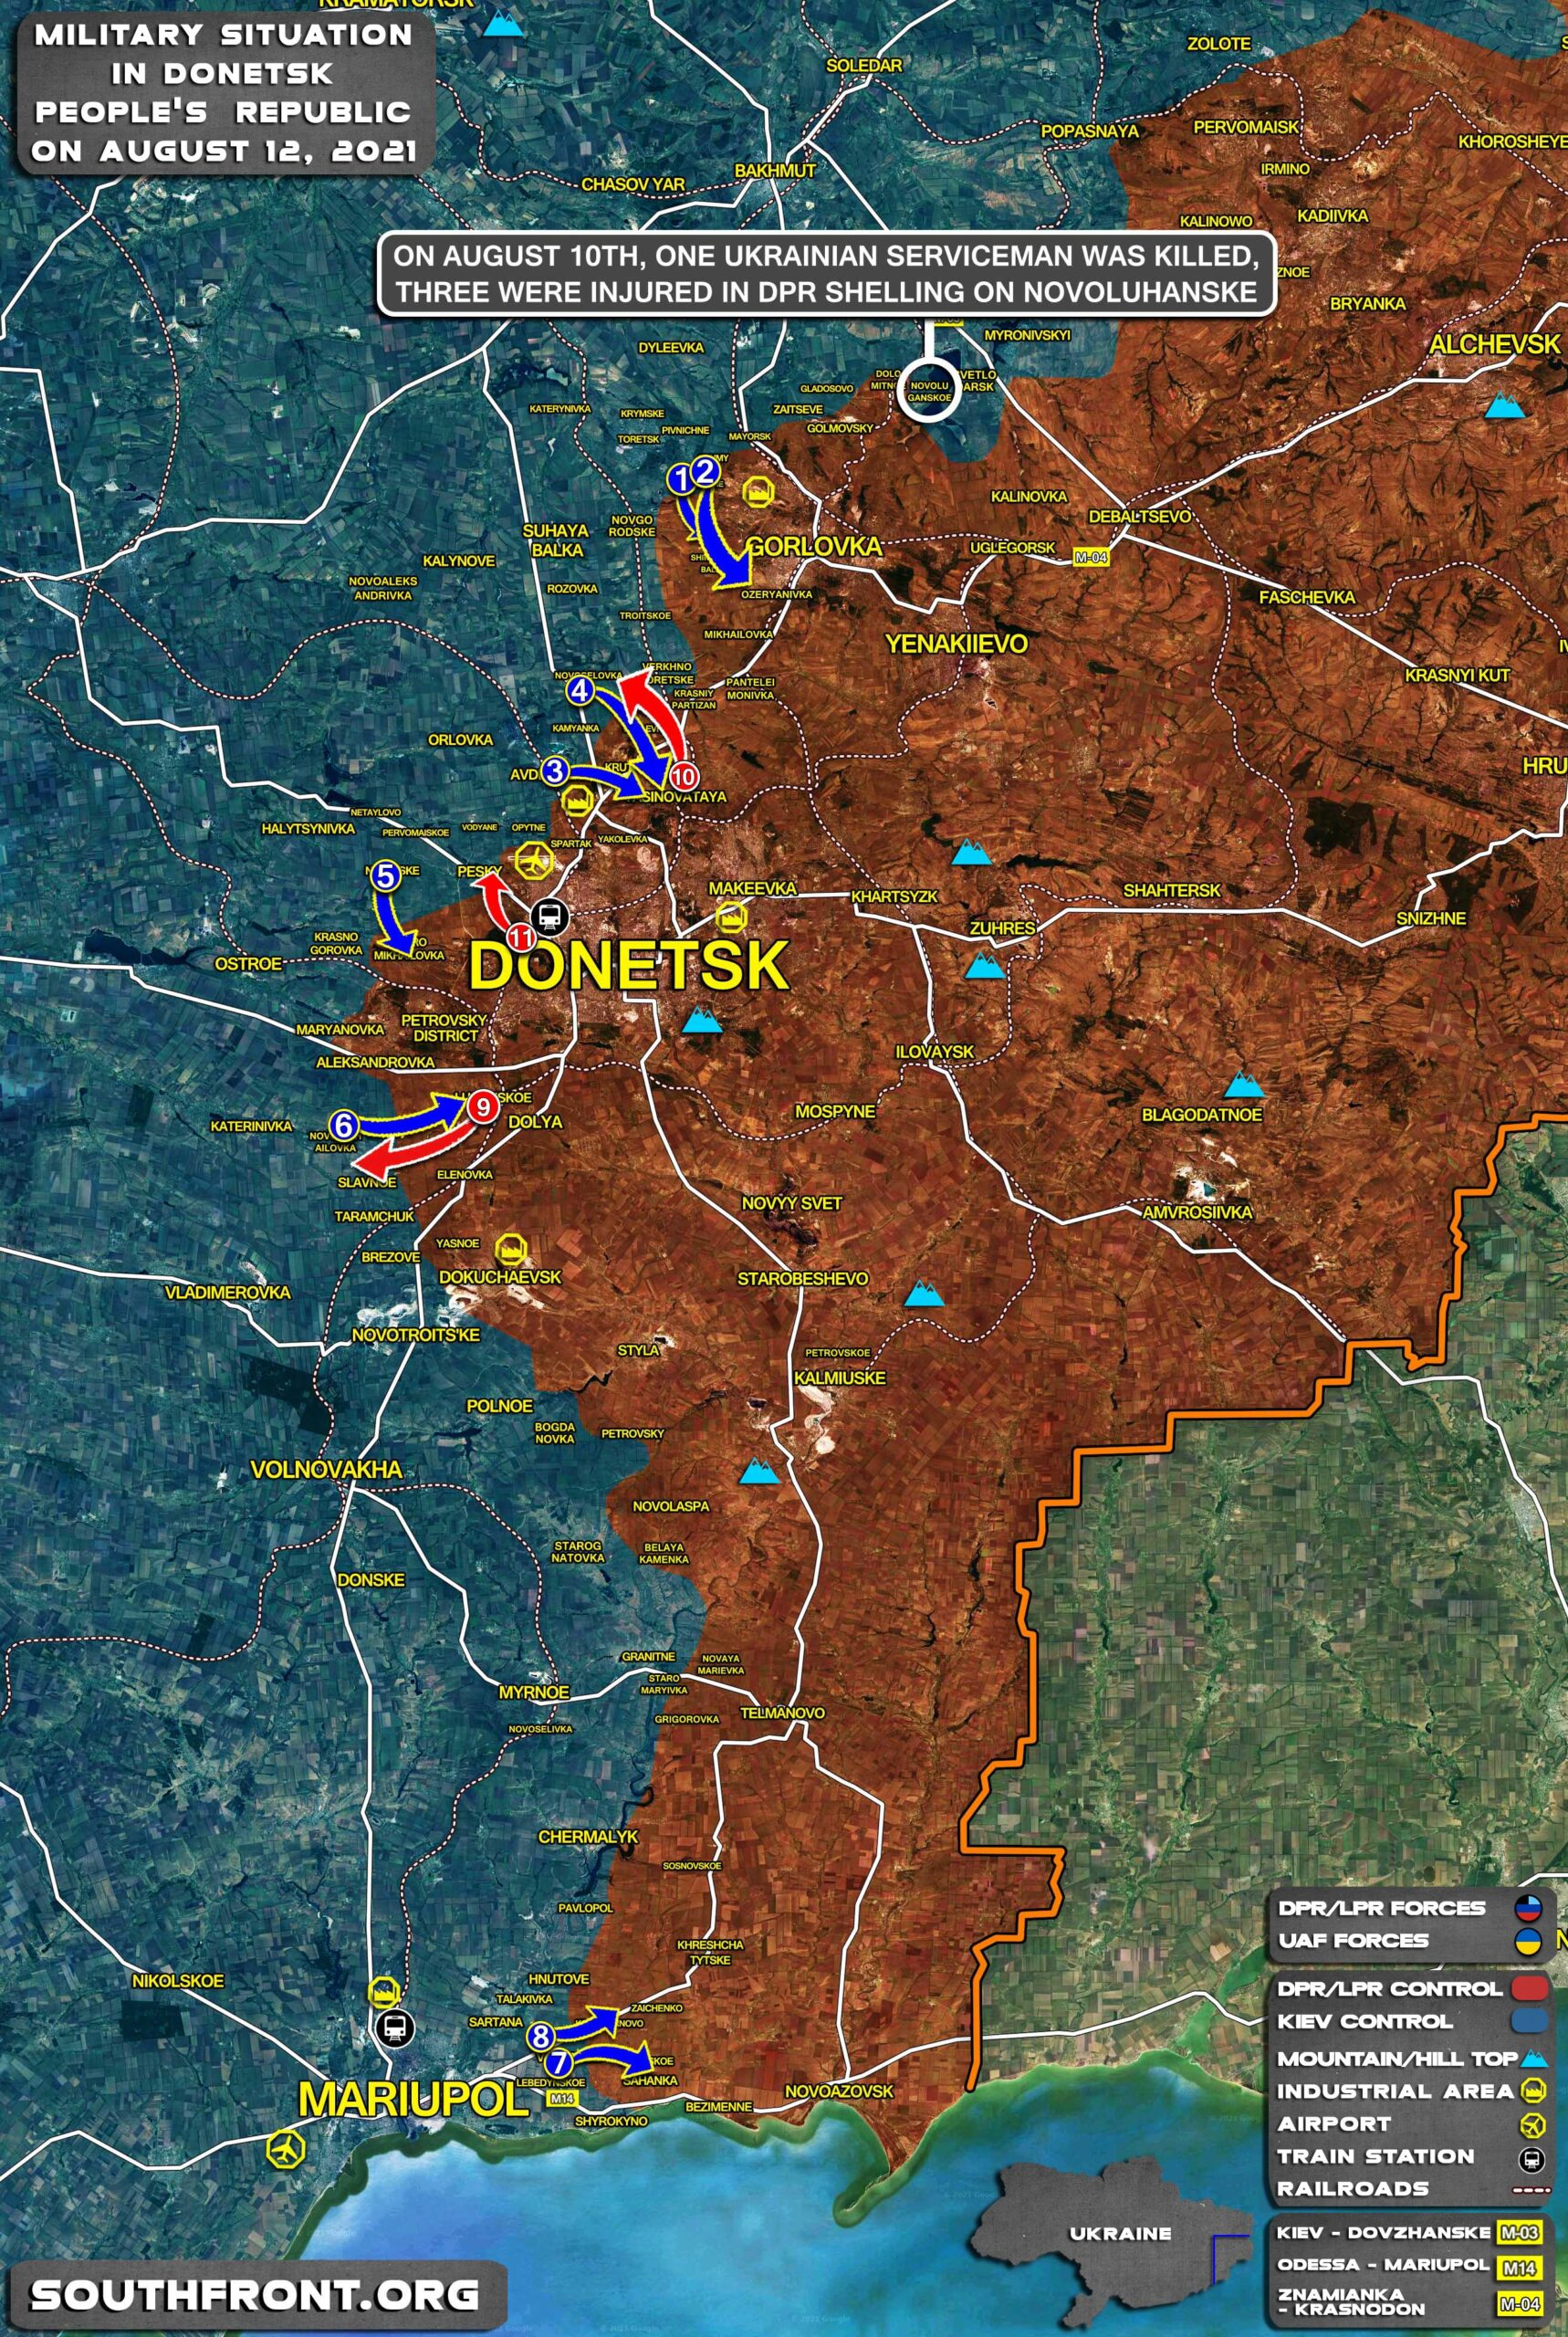 Military Situation In Donetsk People's Republic On August 12, 2021 (Map Update)